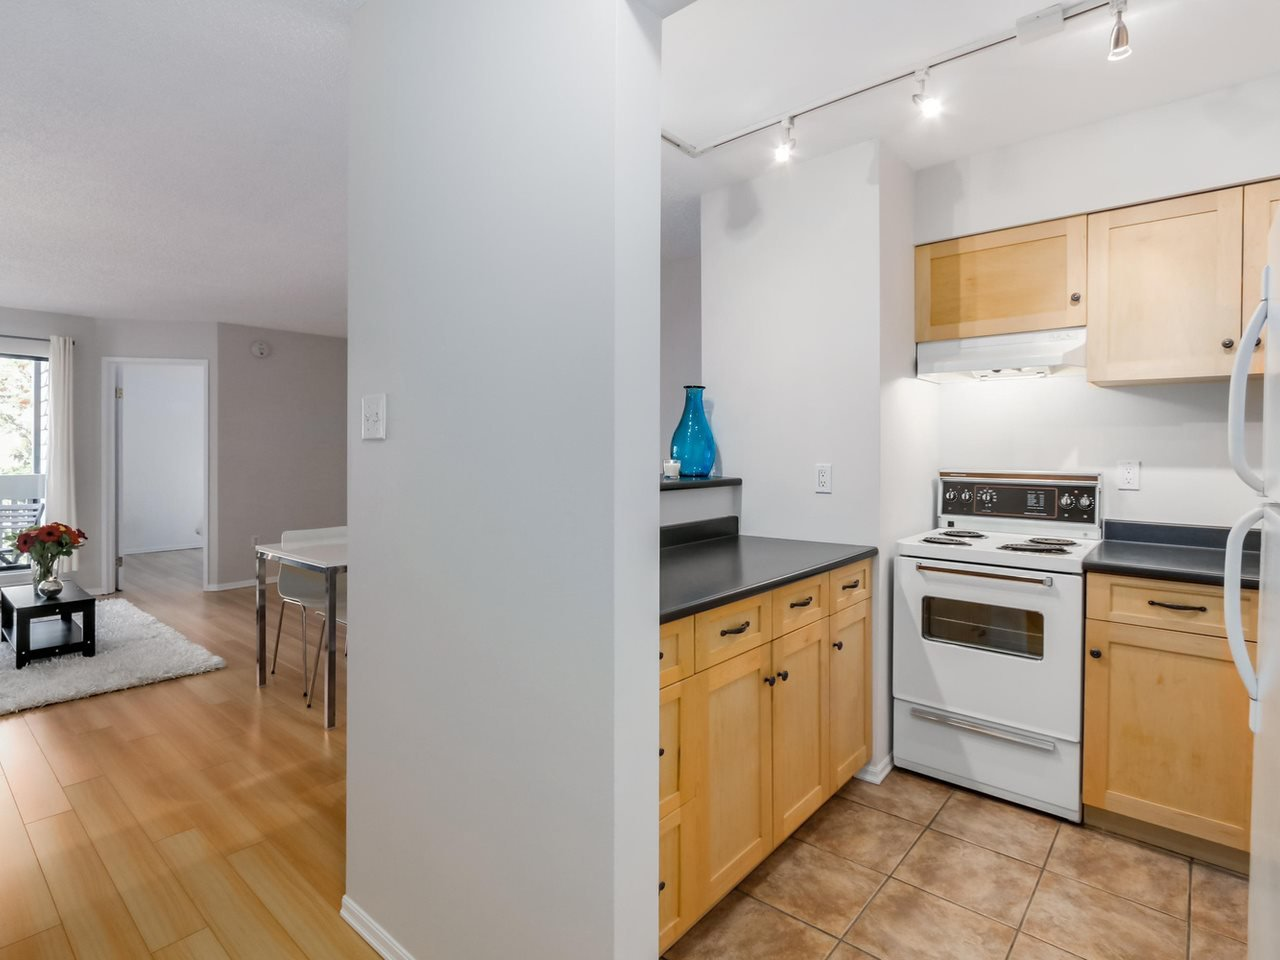 """Photo 8: Photos: 207 1545 E 2ND Avenue in Vancouver: Grandview VE Condo for sale in """"TALISHAN WOODS"""" (Vancouver East)  : MLS®# R2086466"""